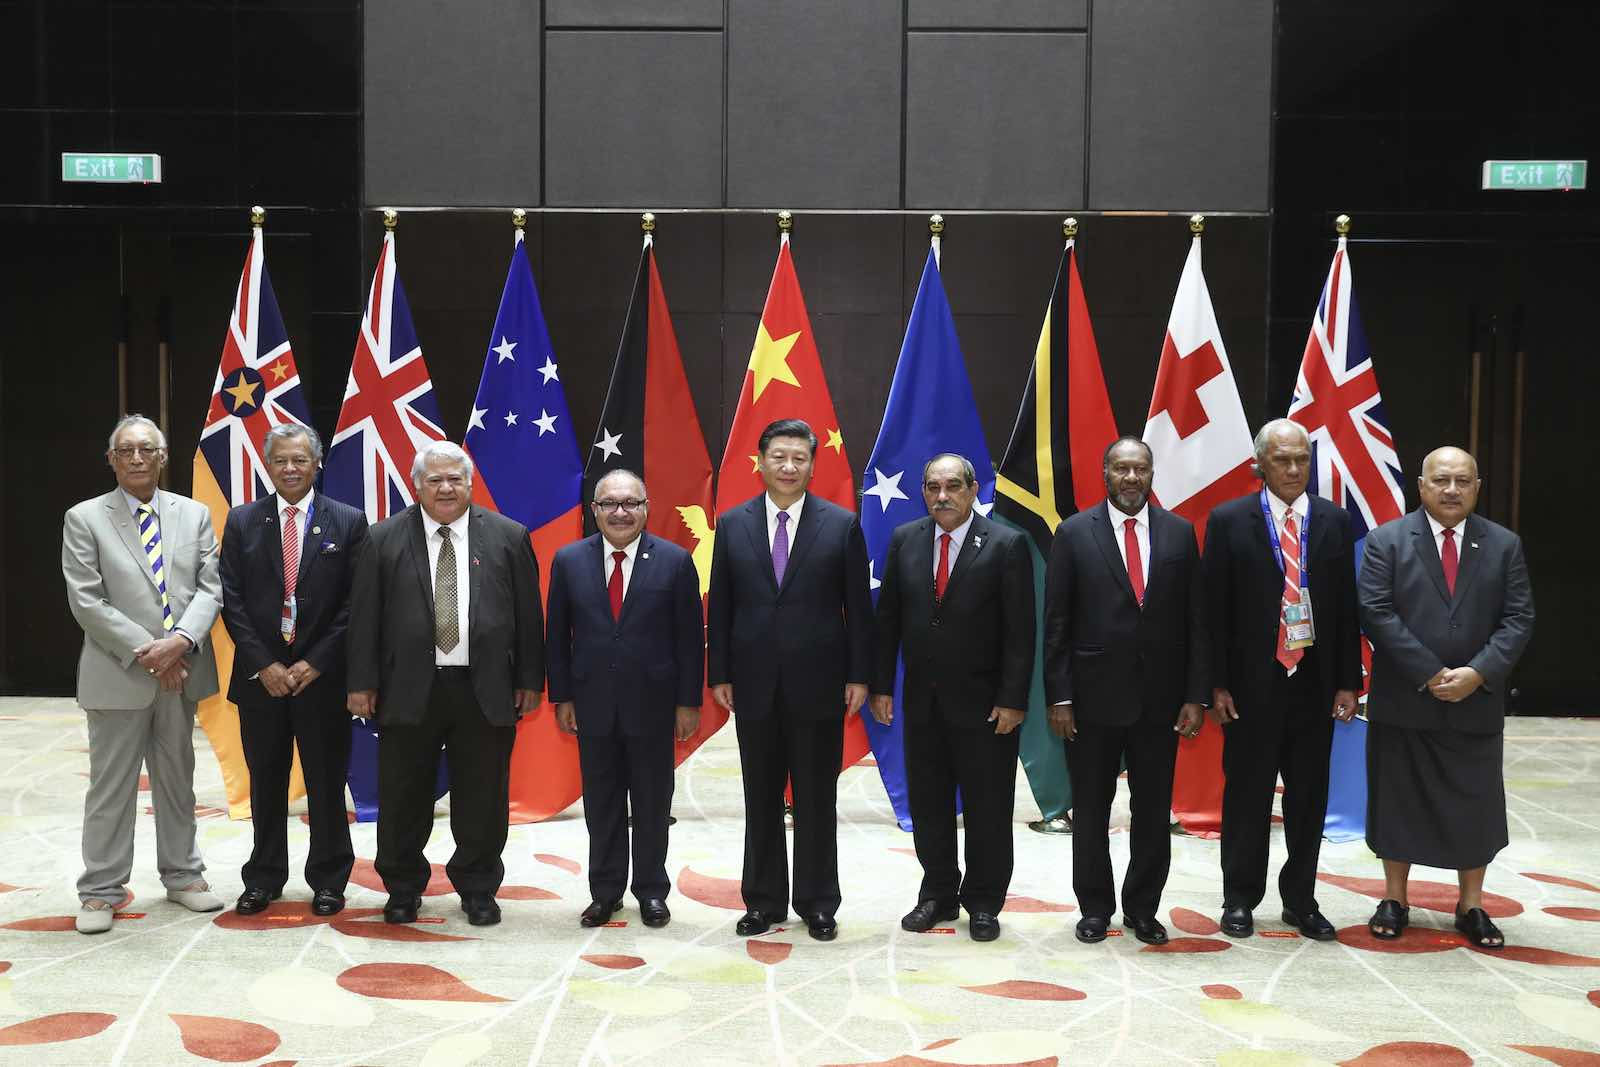 Chinese President Xi Jinping (centre) with Pacific Island leaders at the APEC Summit in Port Moresby, Papua New Guinea, November 2018. (Photo: Sheng Jiapeng/China News Service via Getty Images)